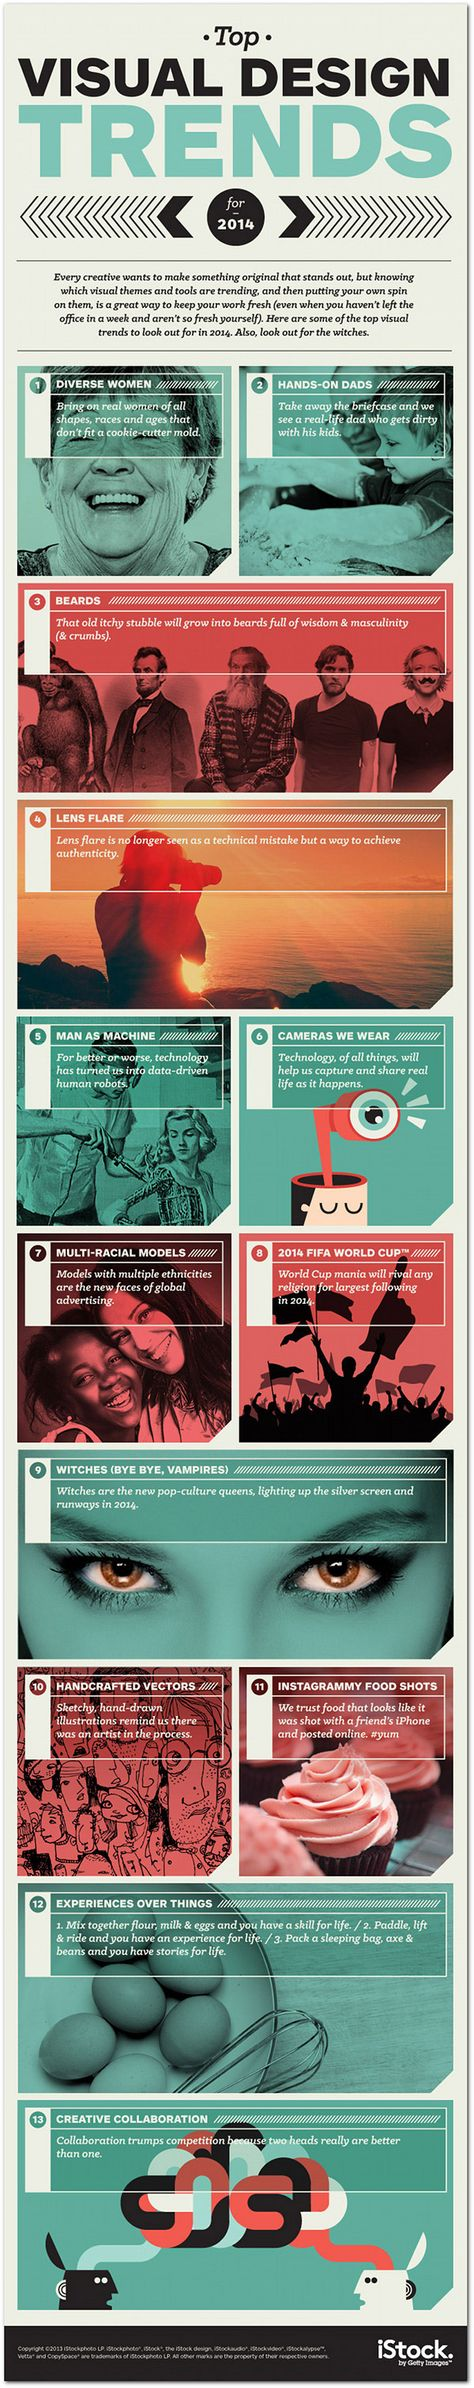 The Top Visual Design Trends for 2014 (Infographic)